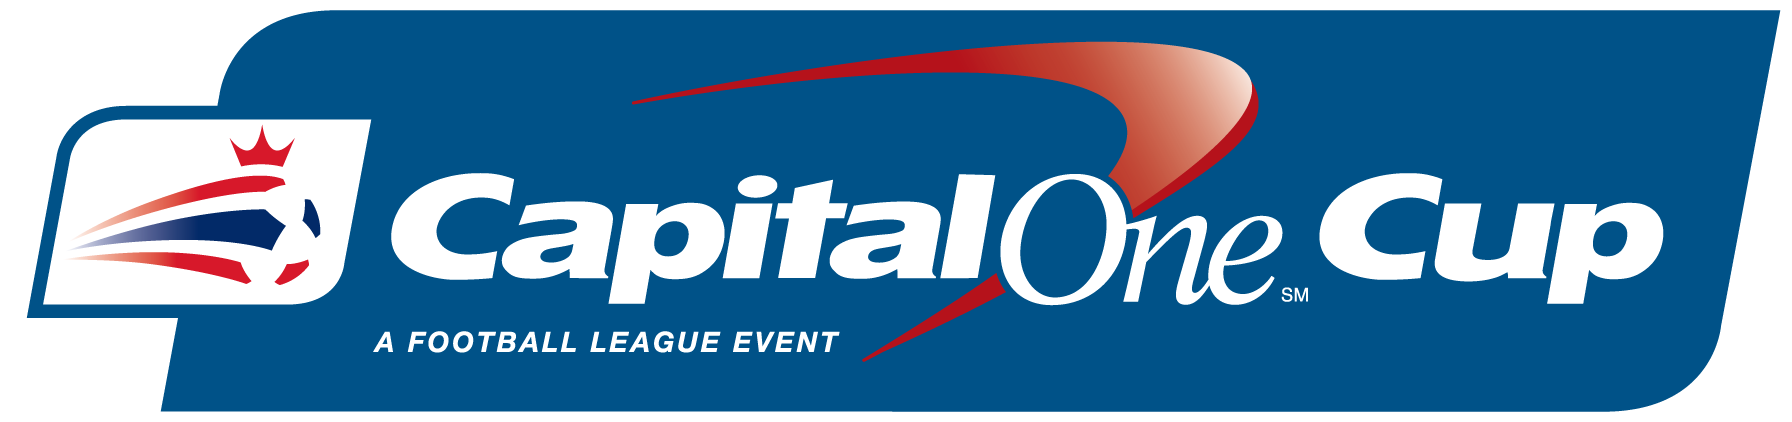 capital one cup 4th round live astro, live streaming arsenal vs chelsea 30.10.2013